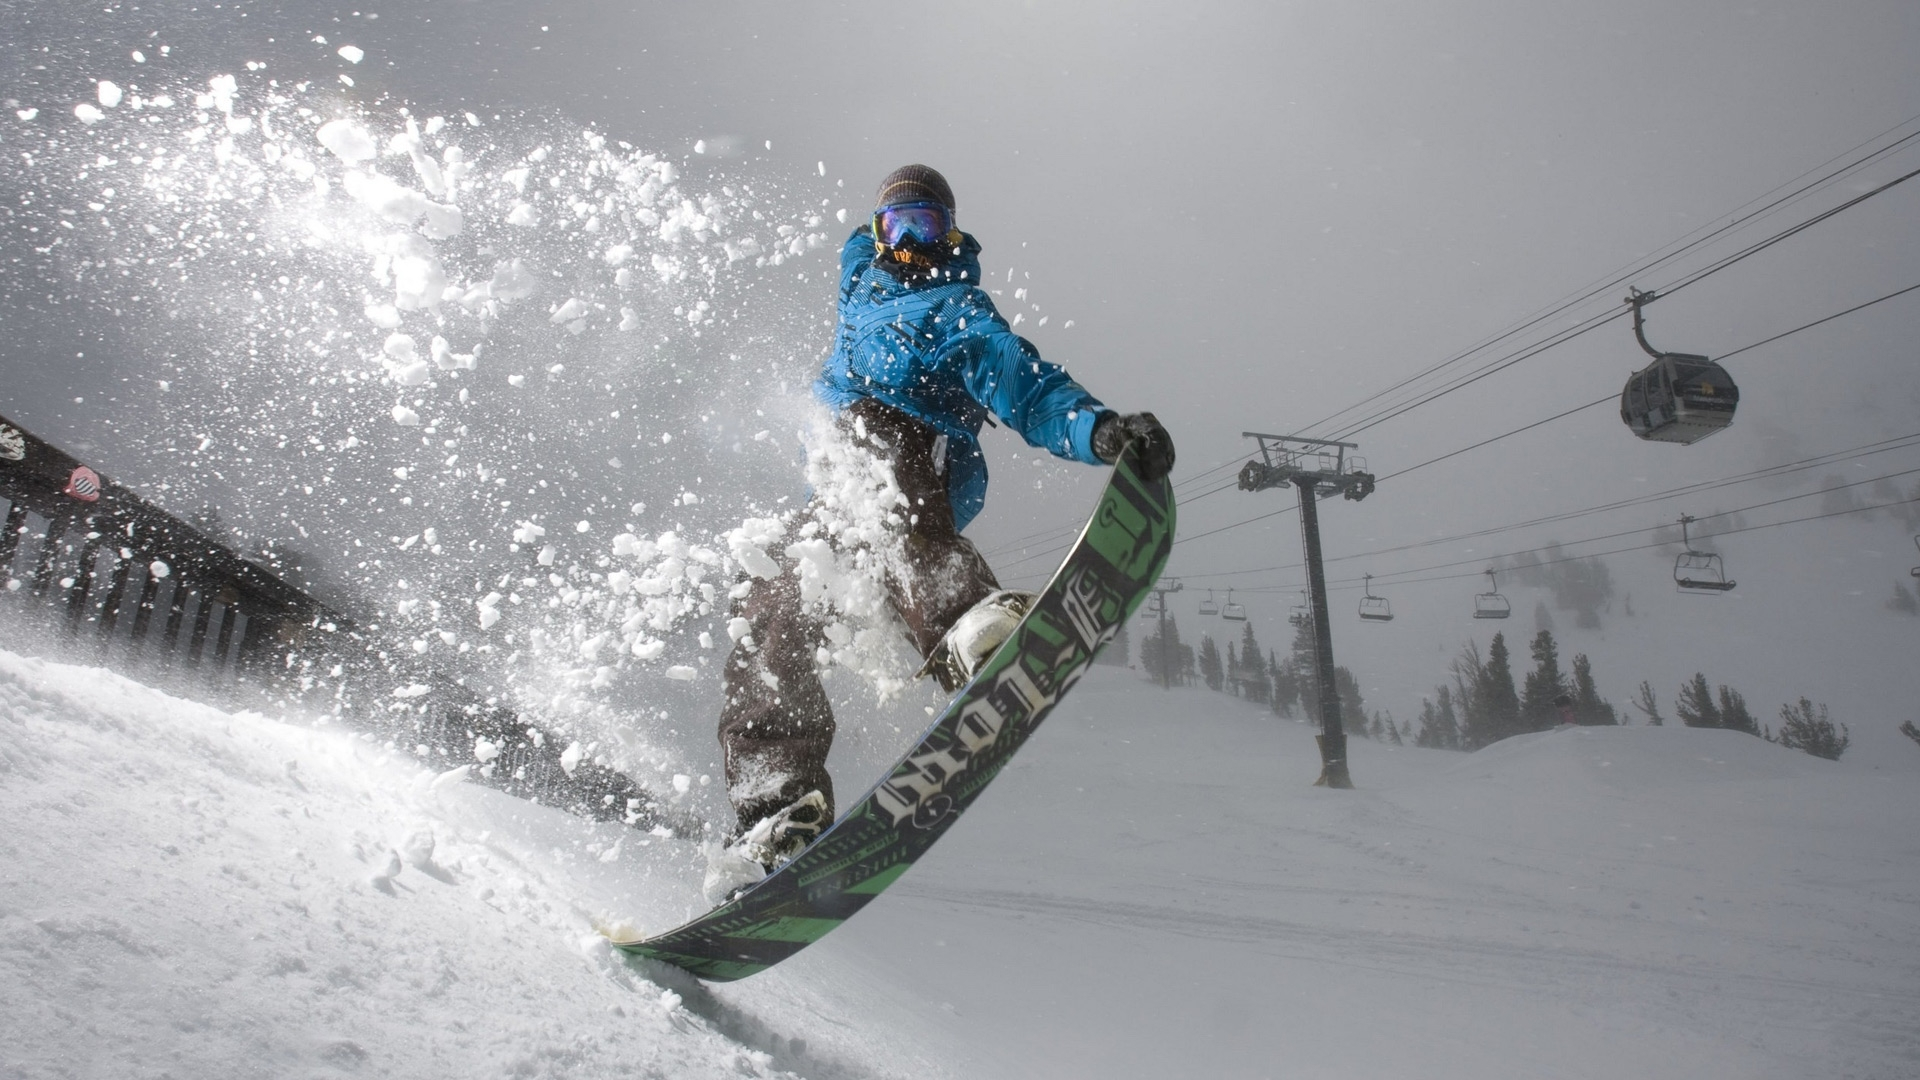 41680 download wallpaper Sports, Winter, Snow, Snowboarding screensavers and pictures for free